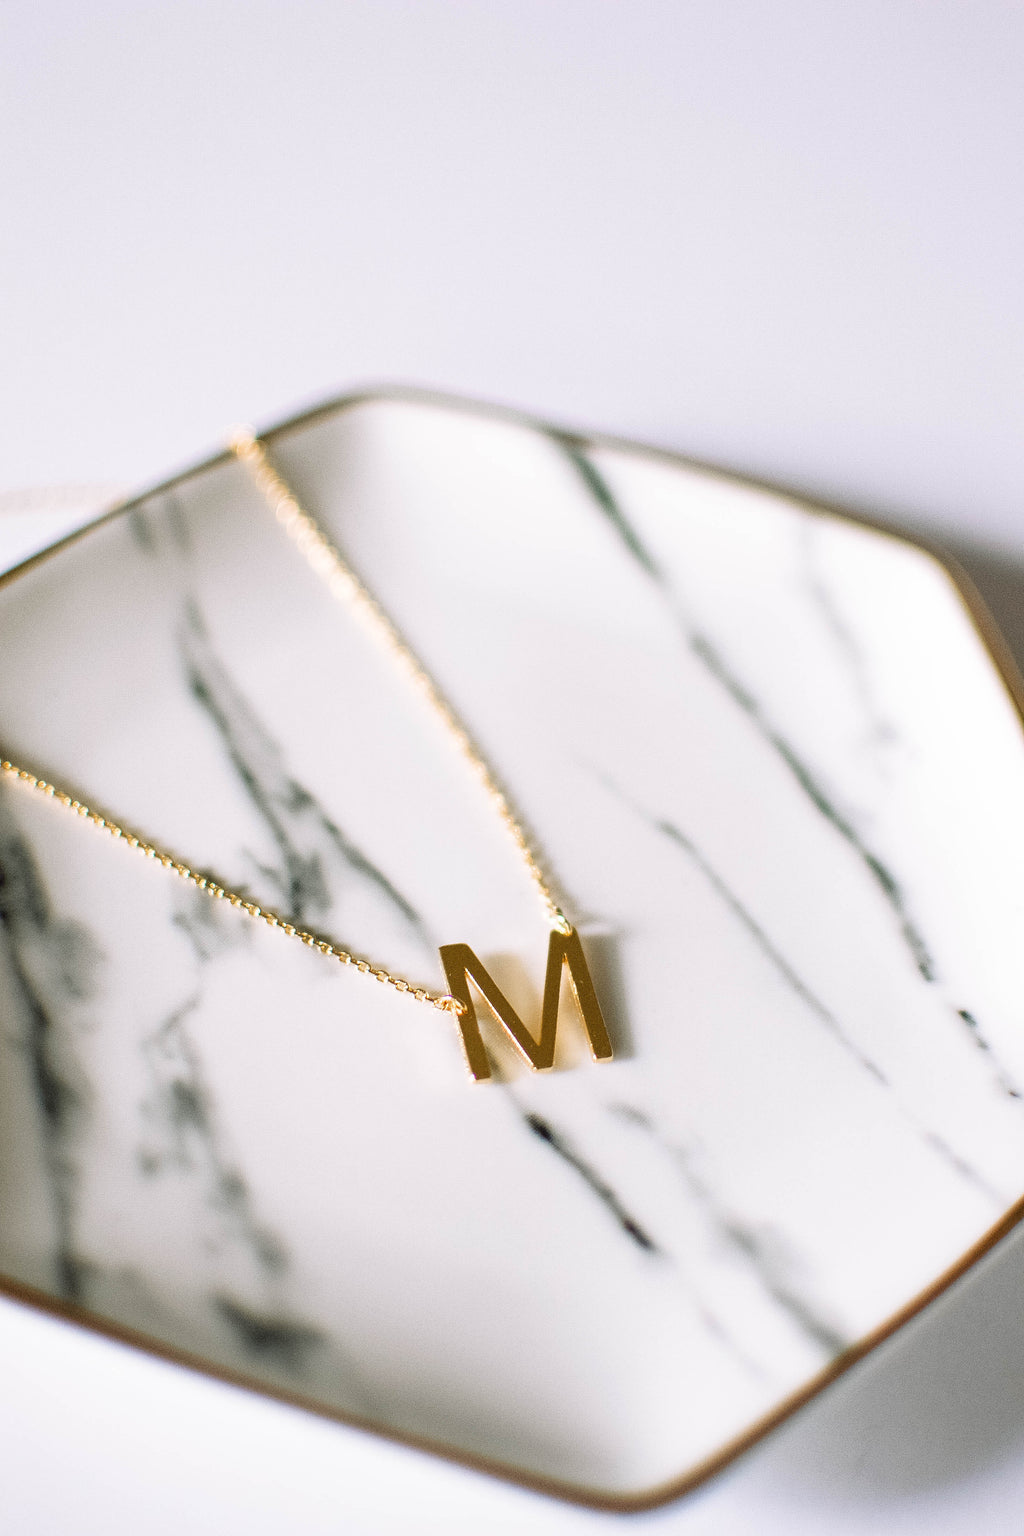 Gold Brushed Letter Necklace - M - Mint Pop Shop